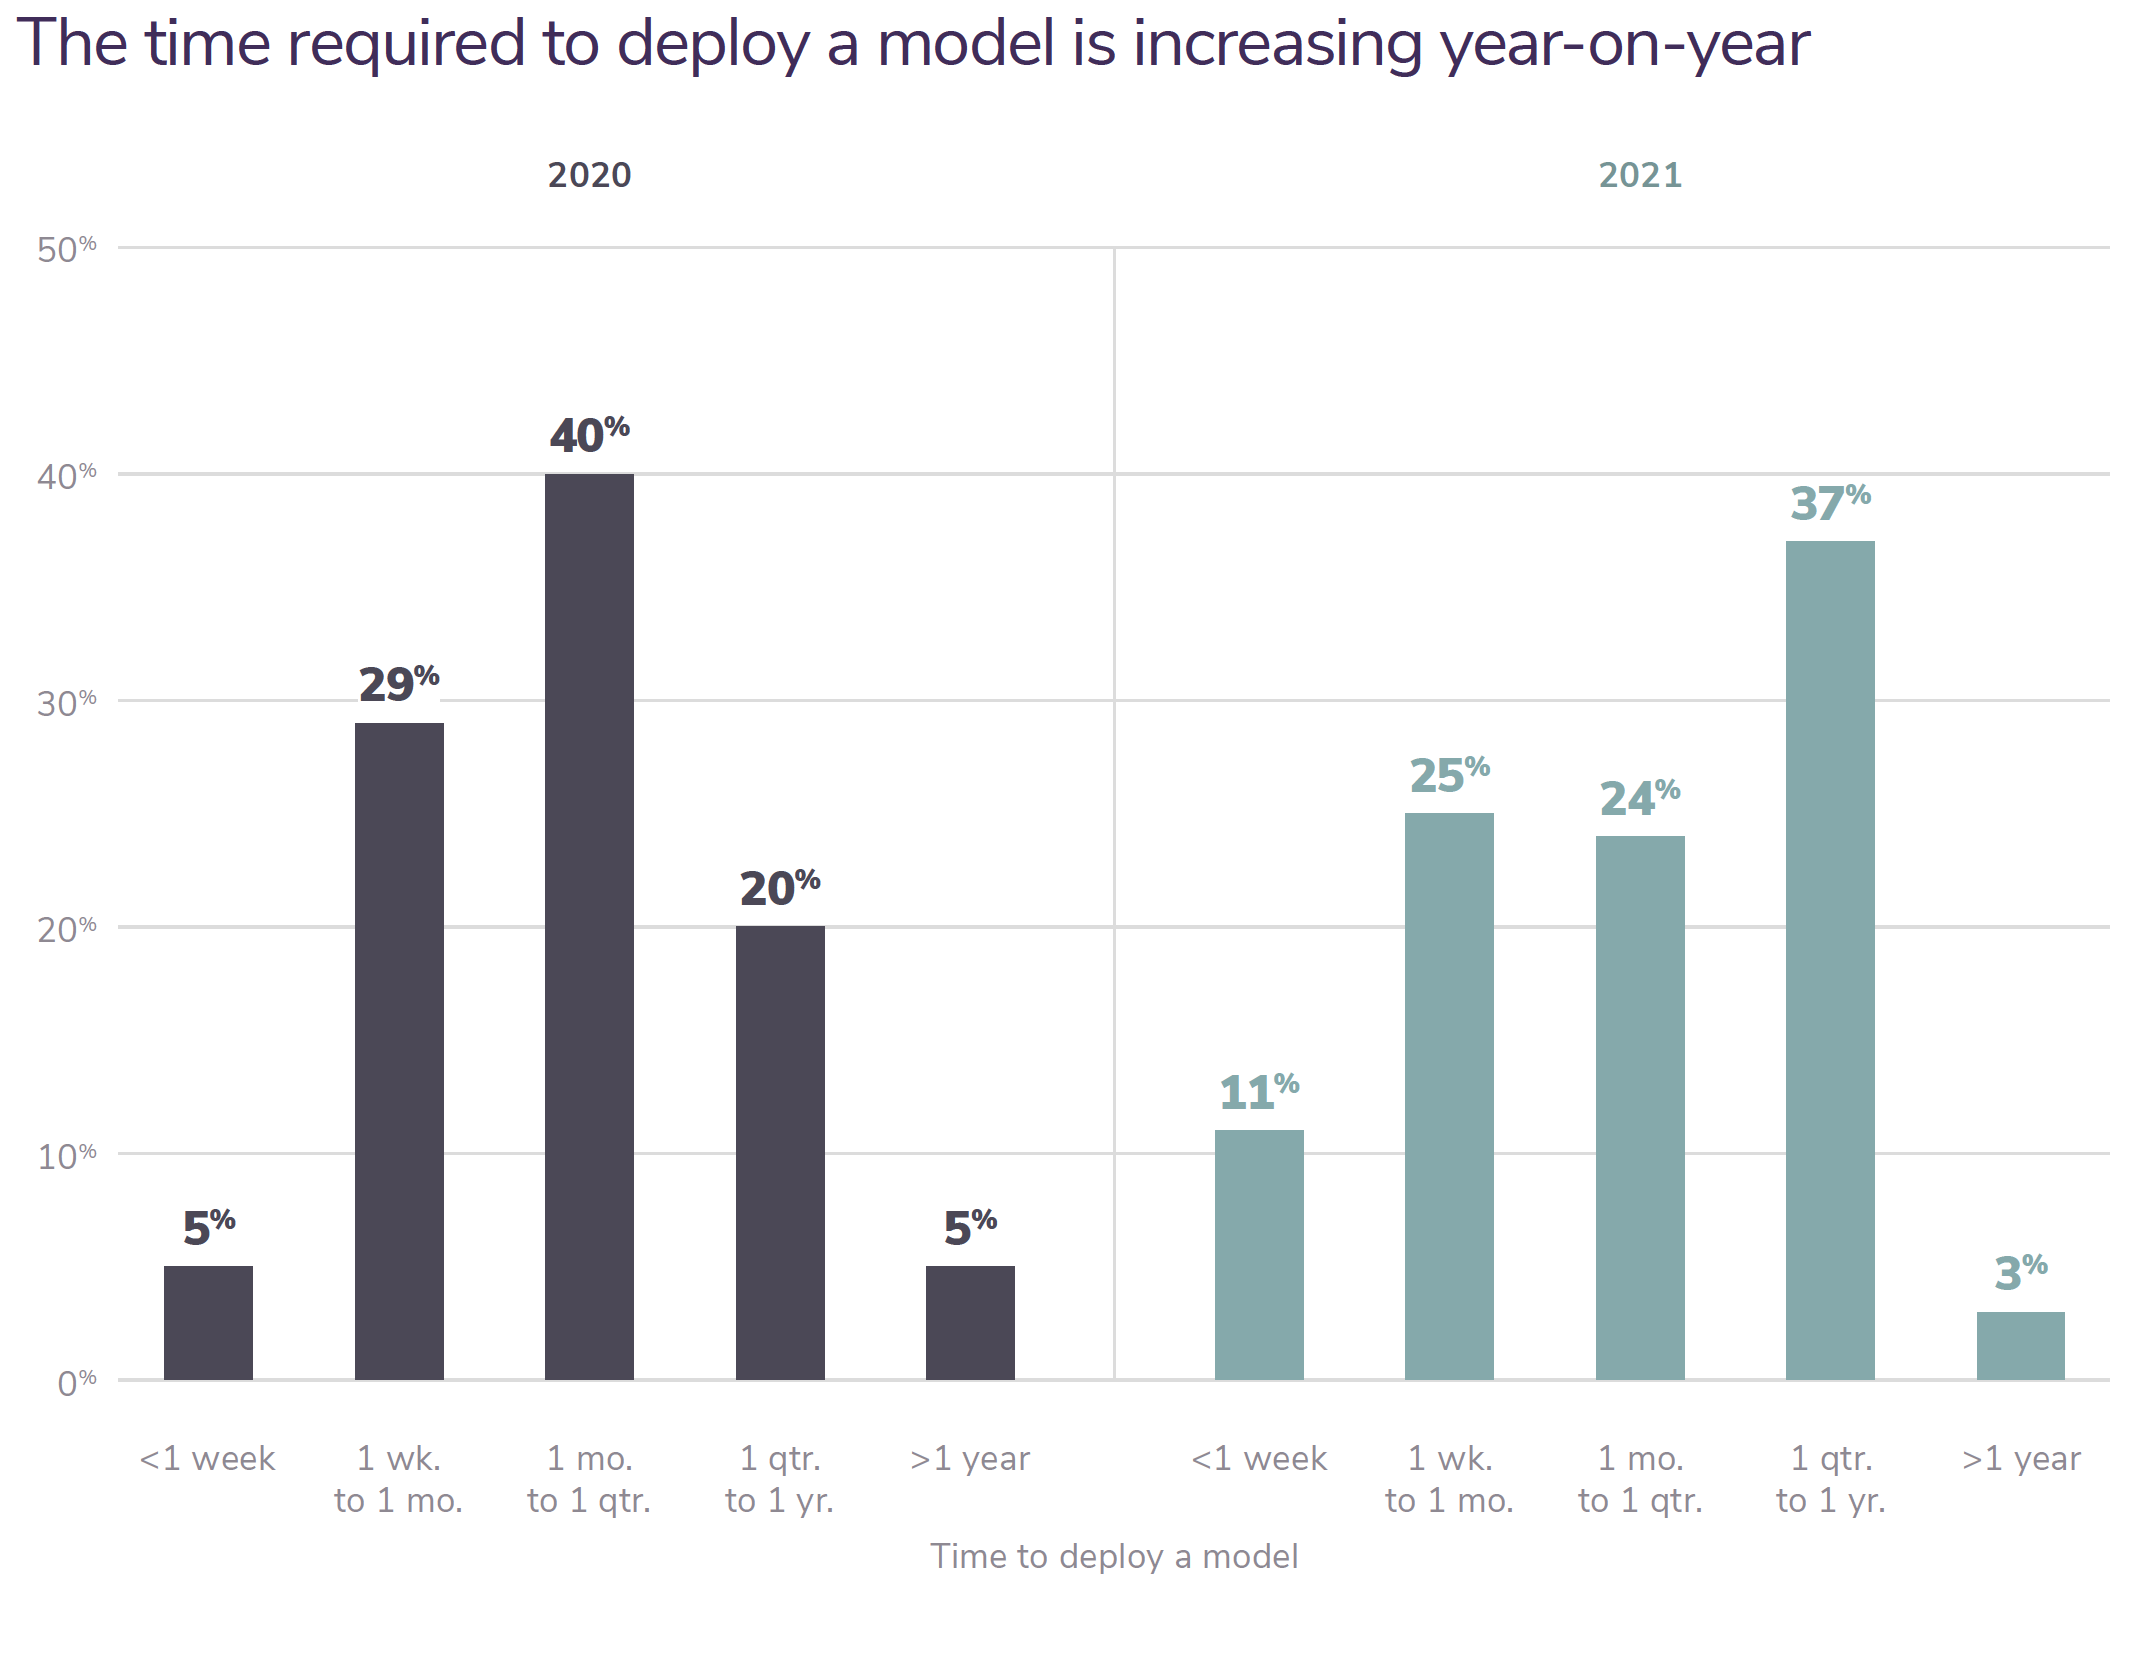 The time required to deploy a model is increasing year-on-year